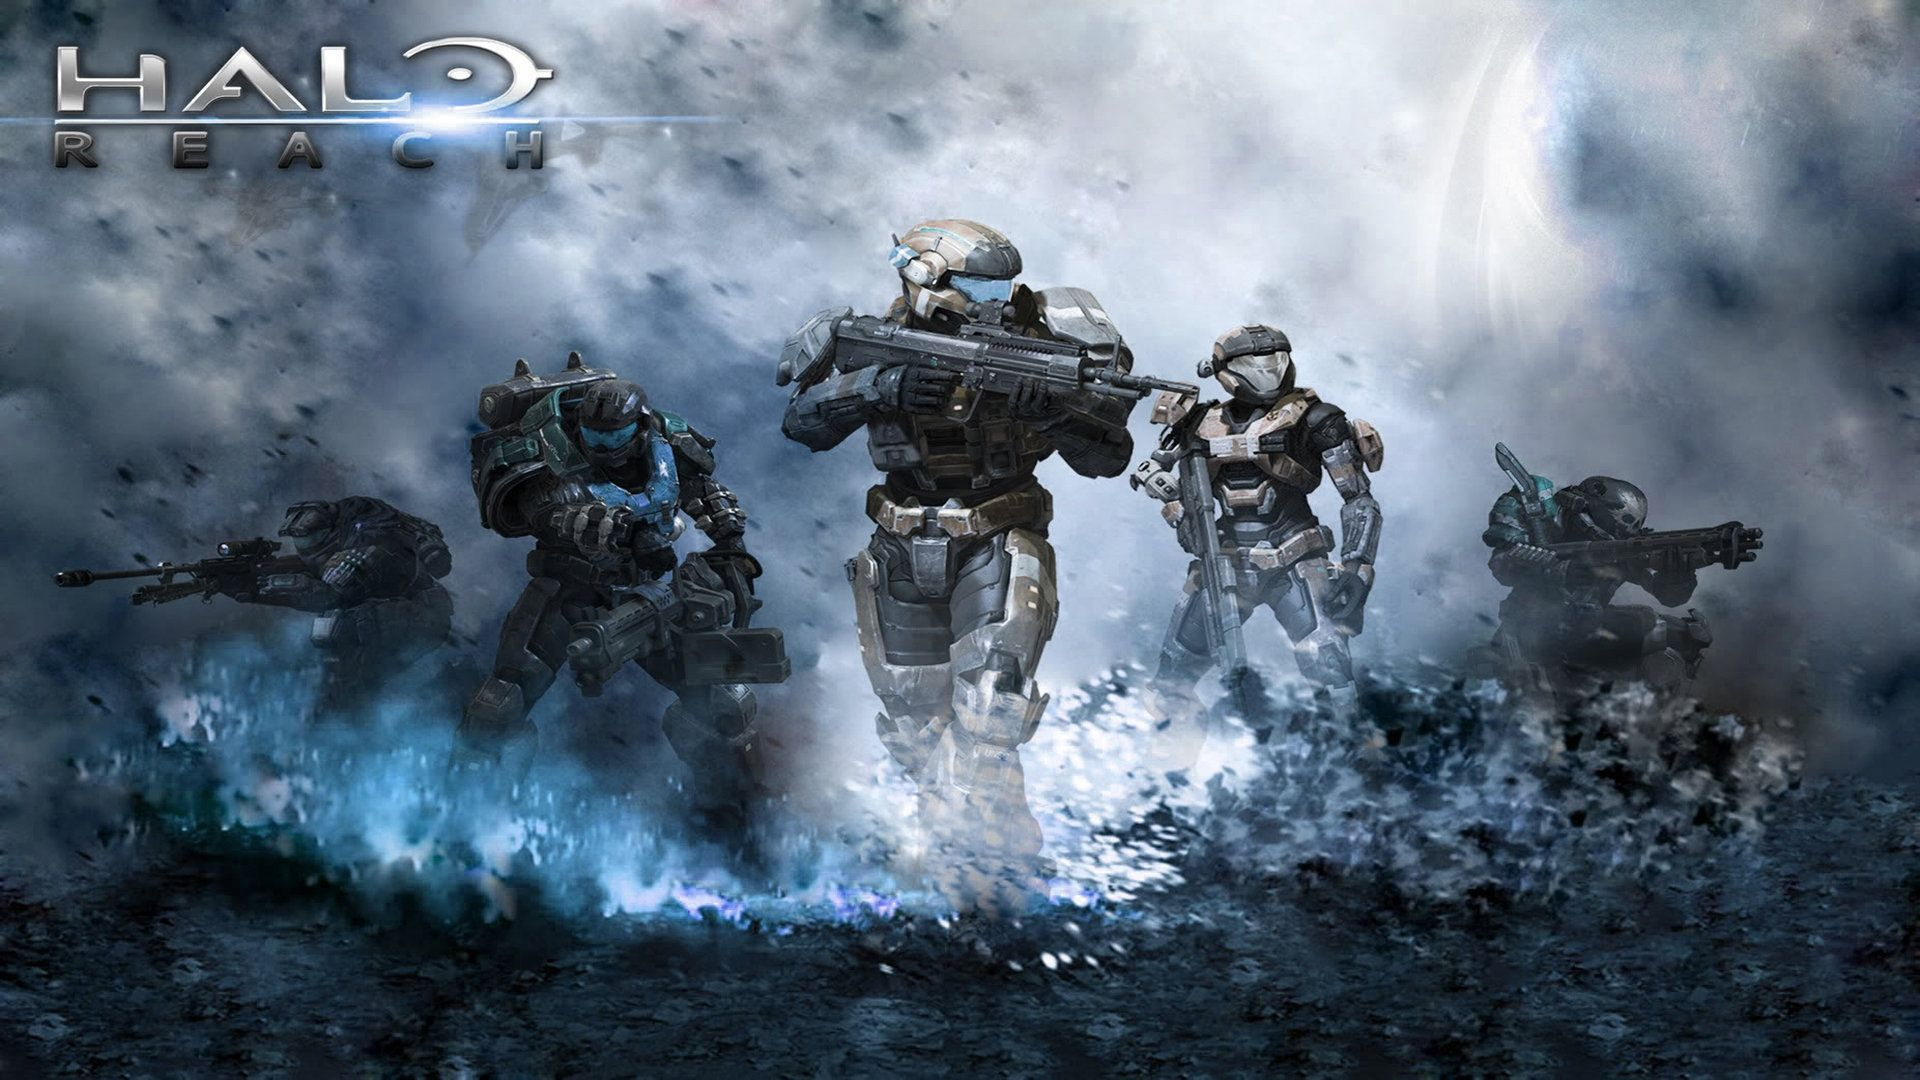 Halo wallpaper 1080p Group (85+)